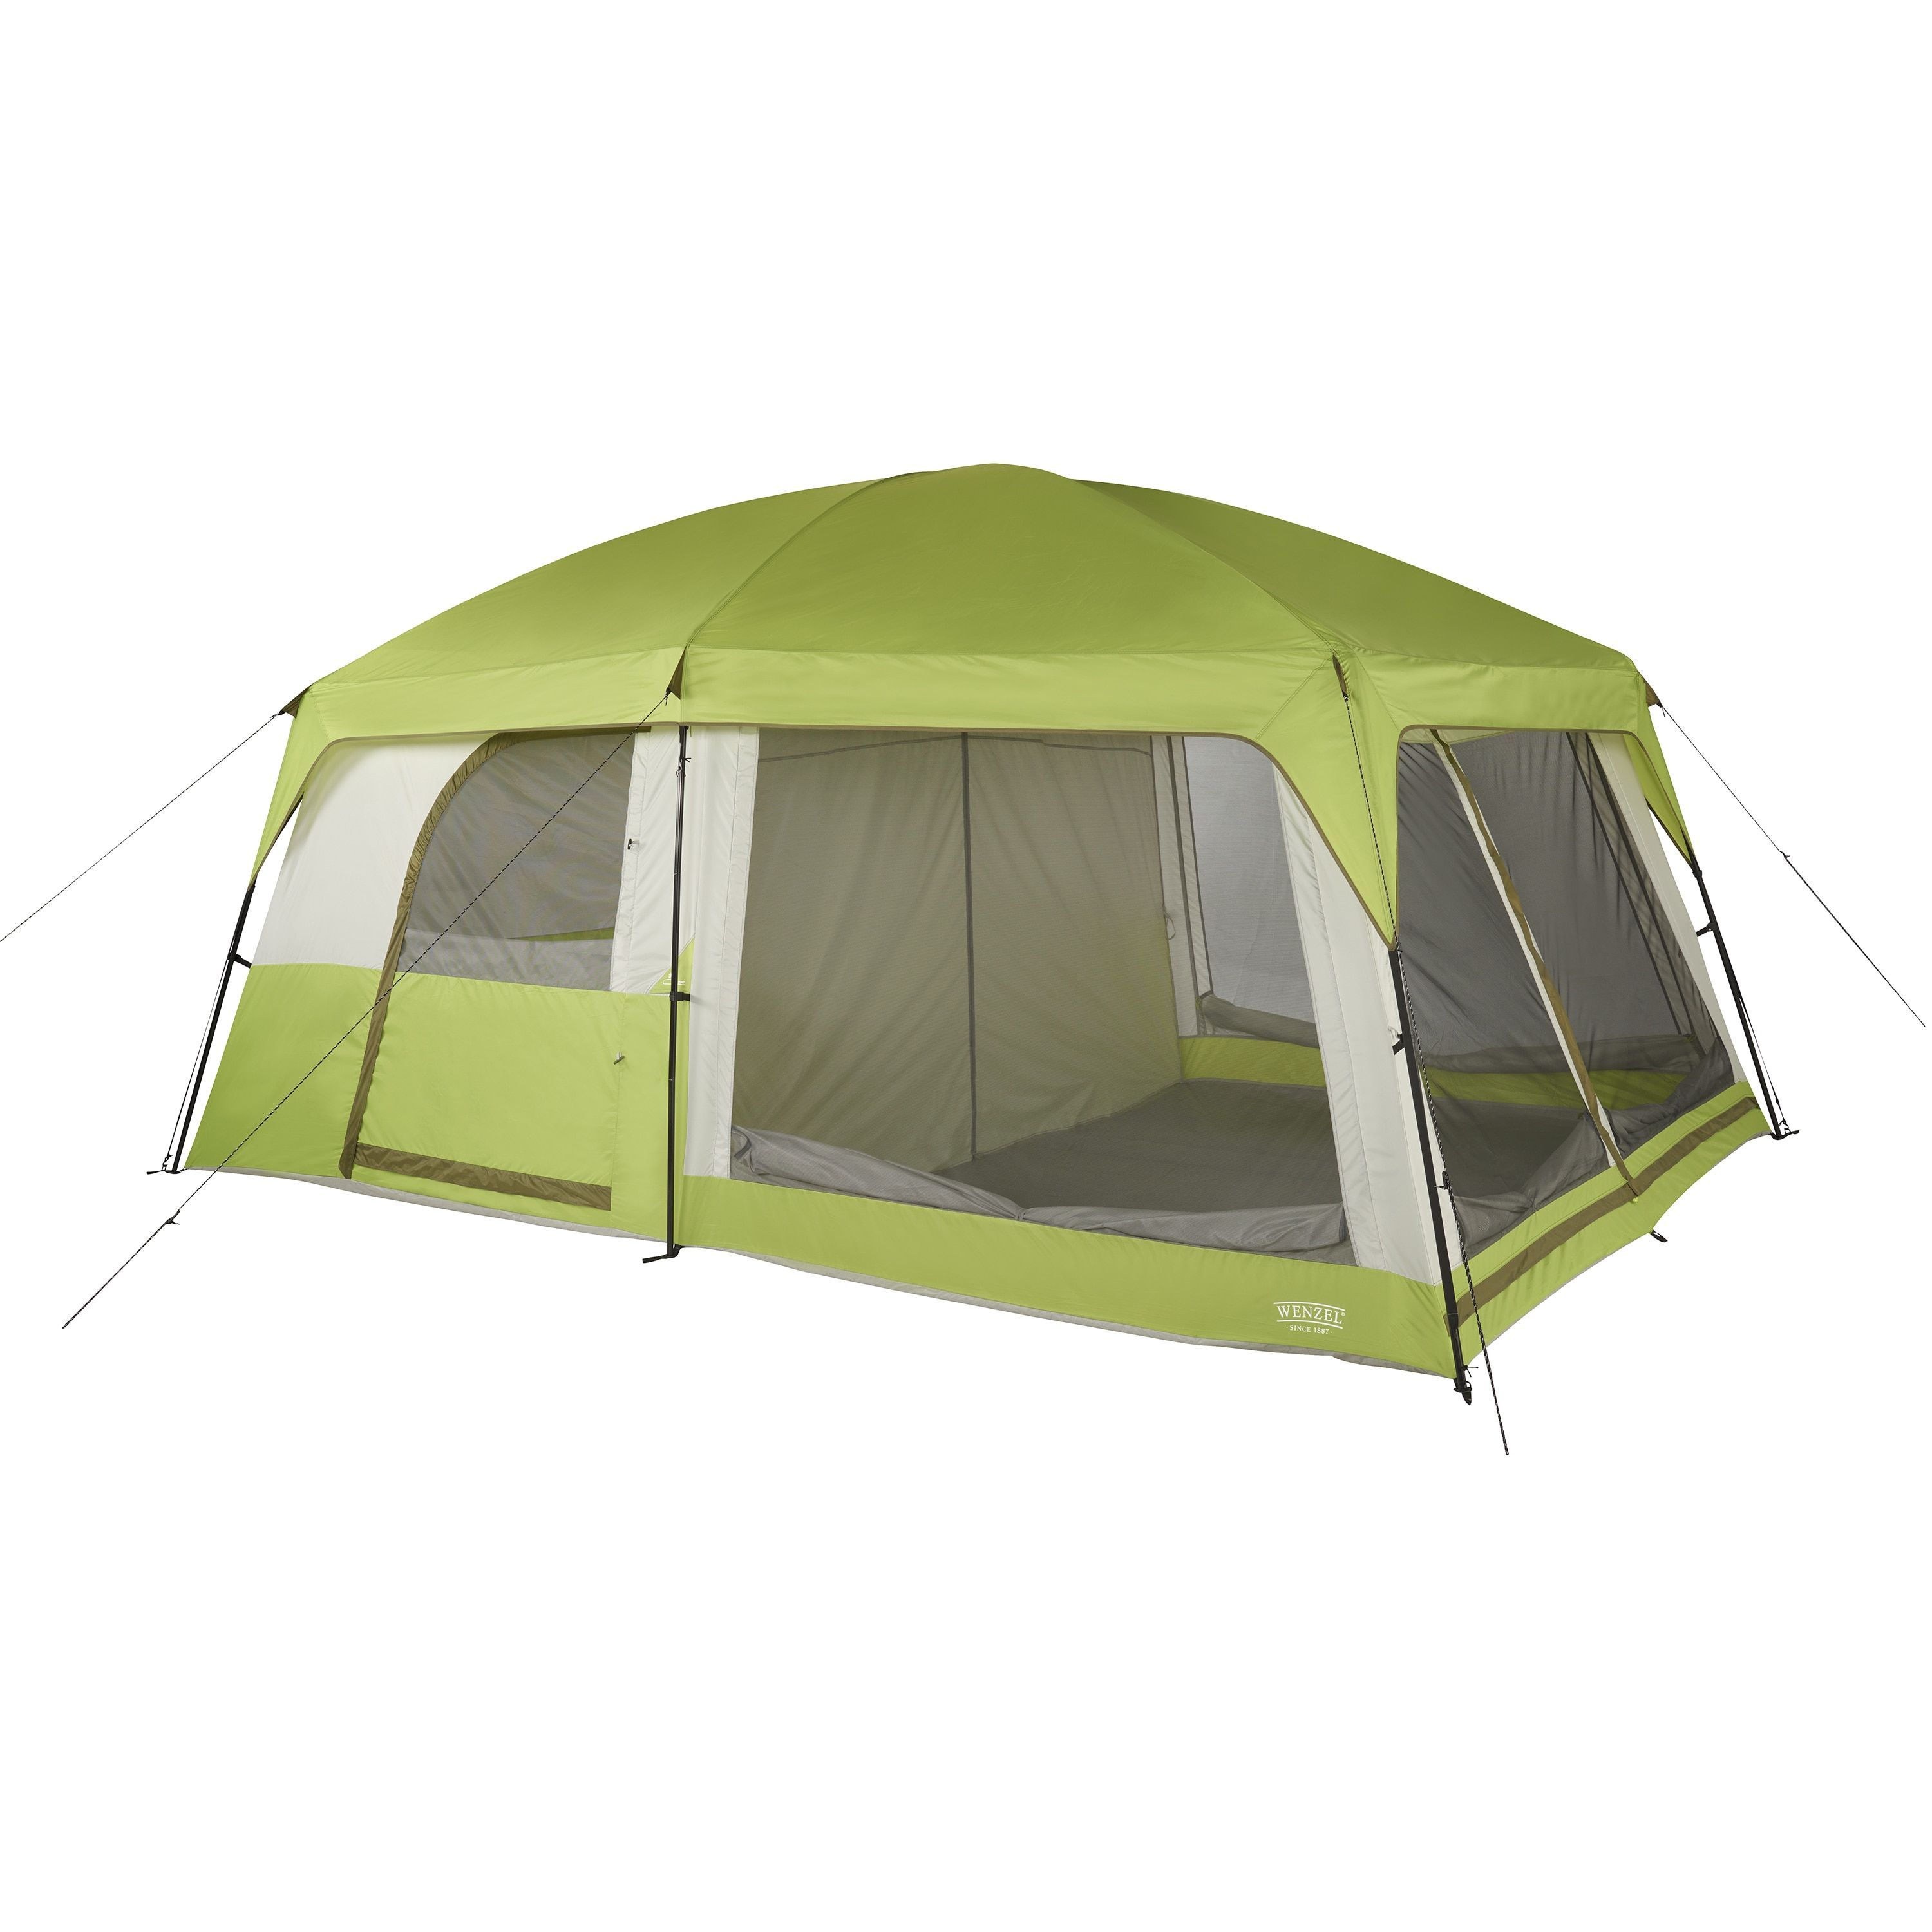 Wenzel Eldorado 10 Person Cabin Tent Best Camping TentCamping IdeasFamily CampingScreen TentThe Great